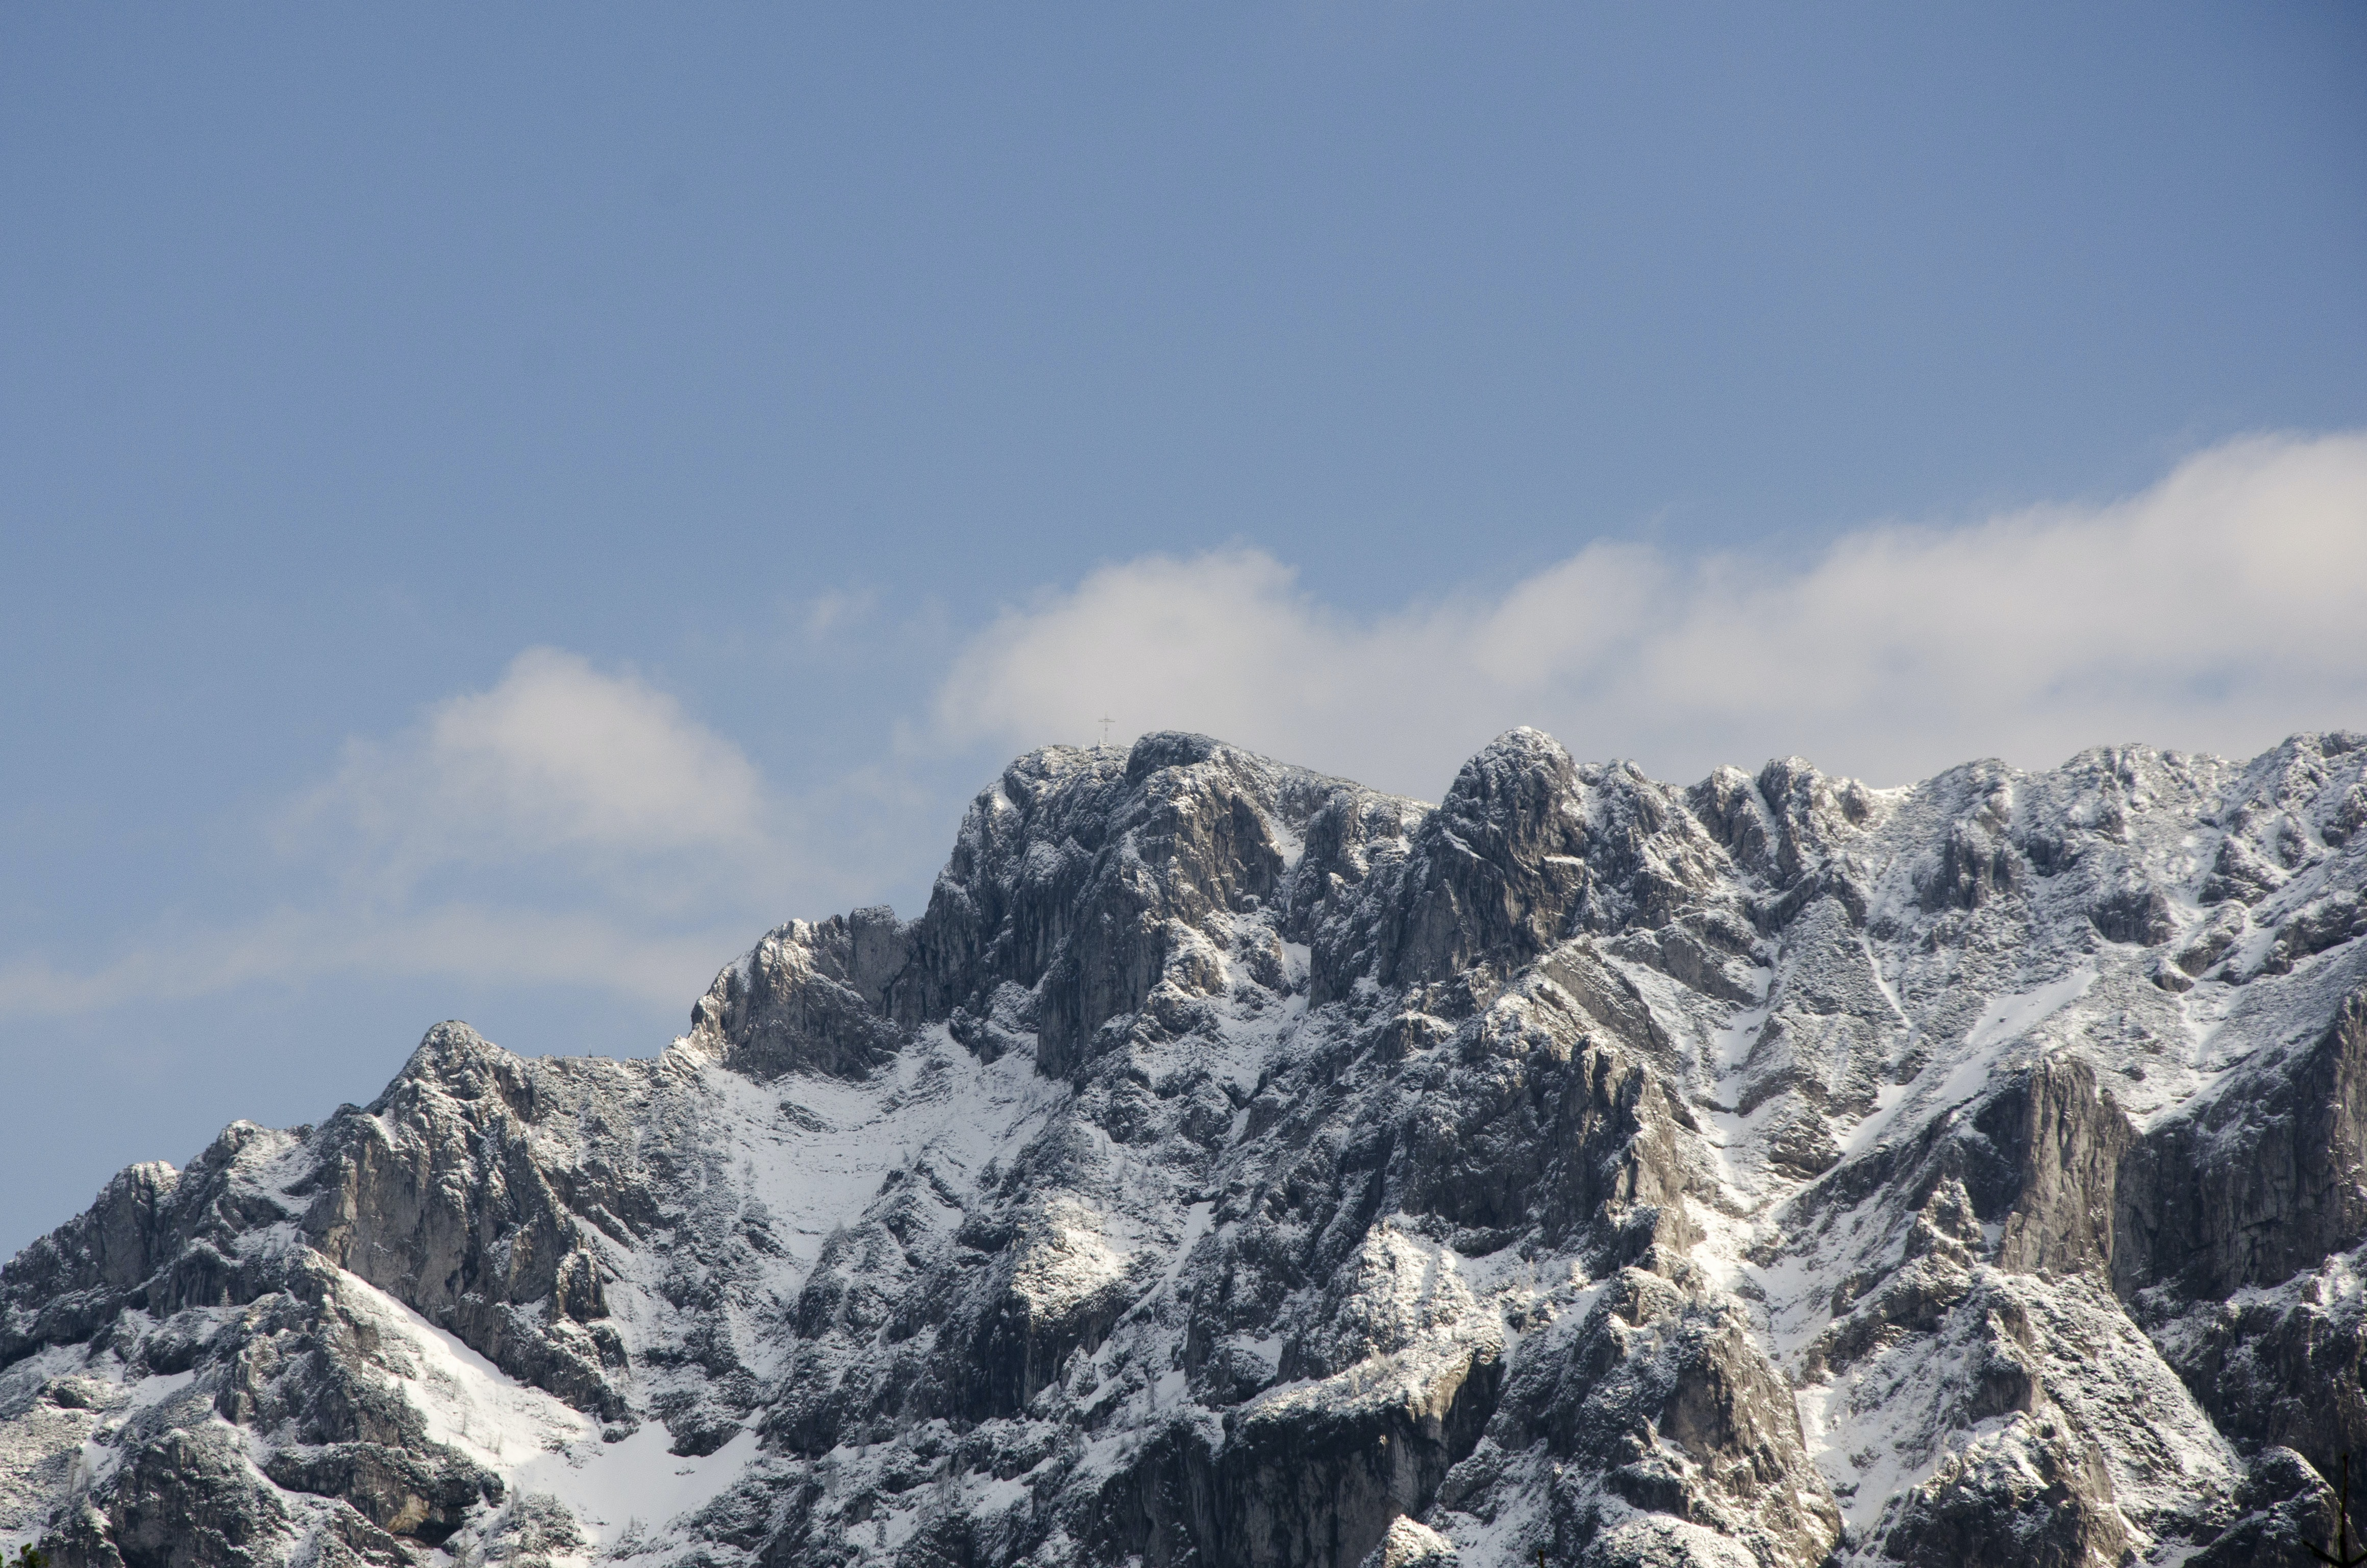 Rock and peaks topped with snow in Gmunden, Austria